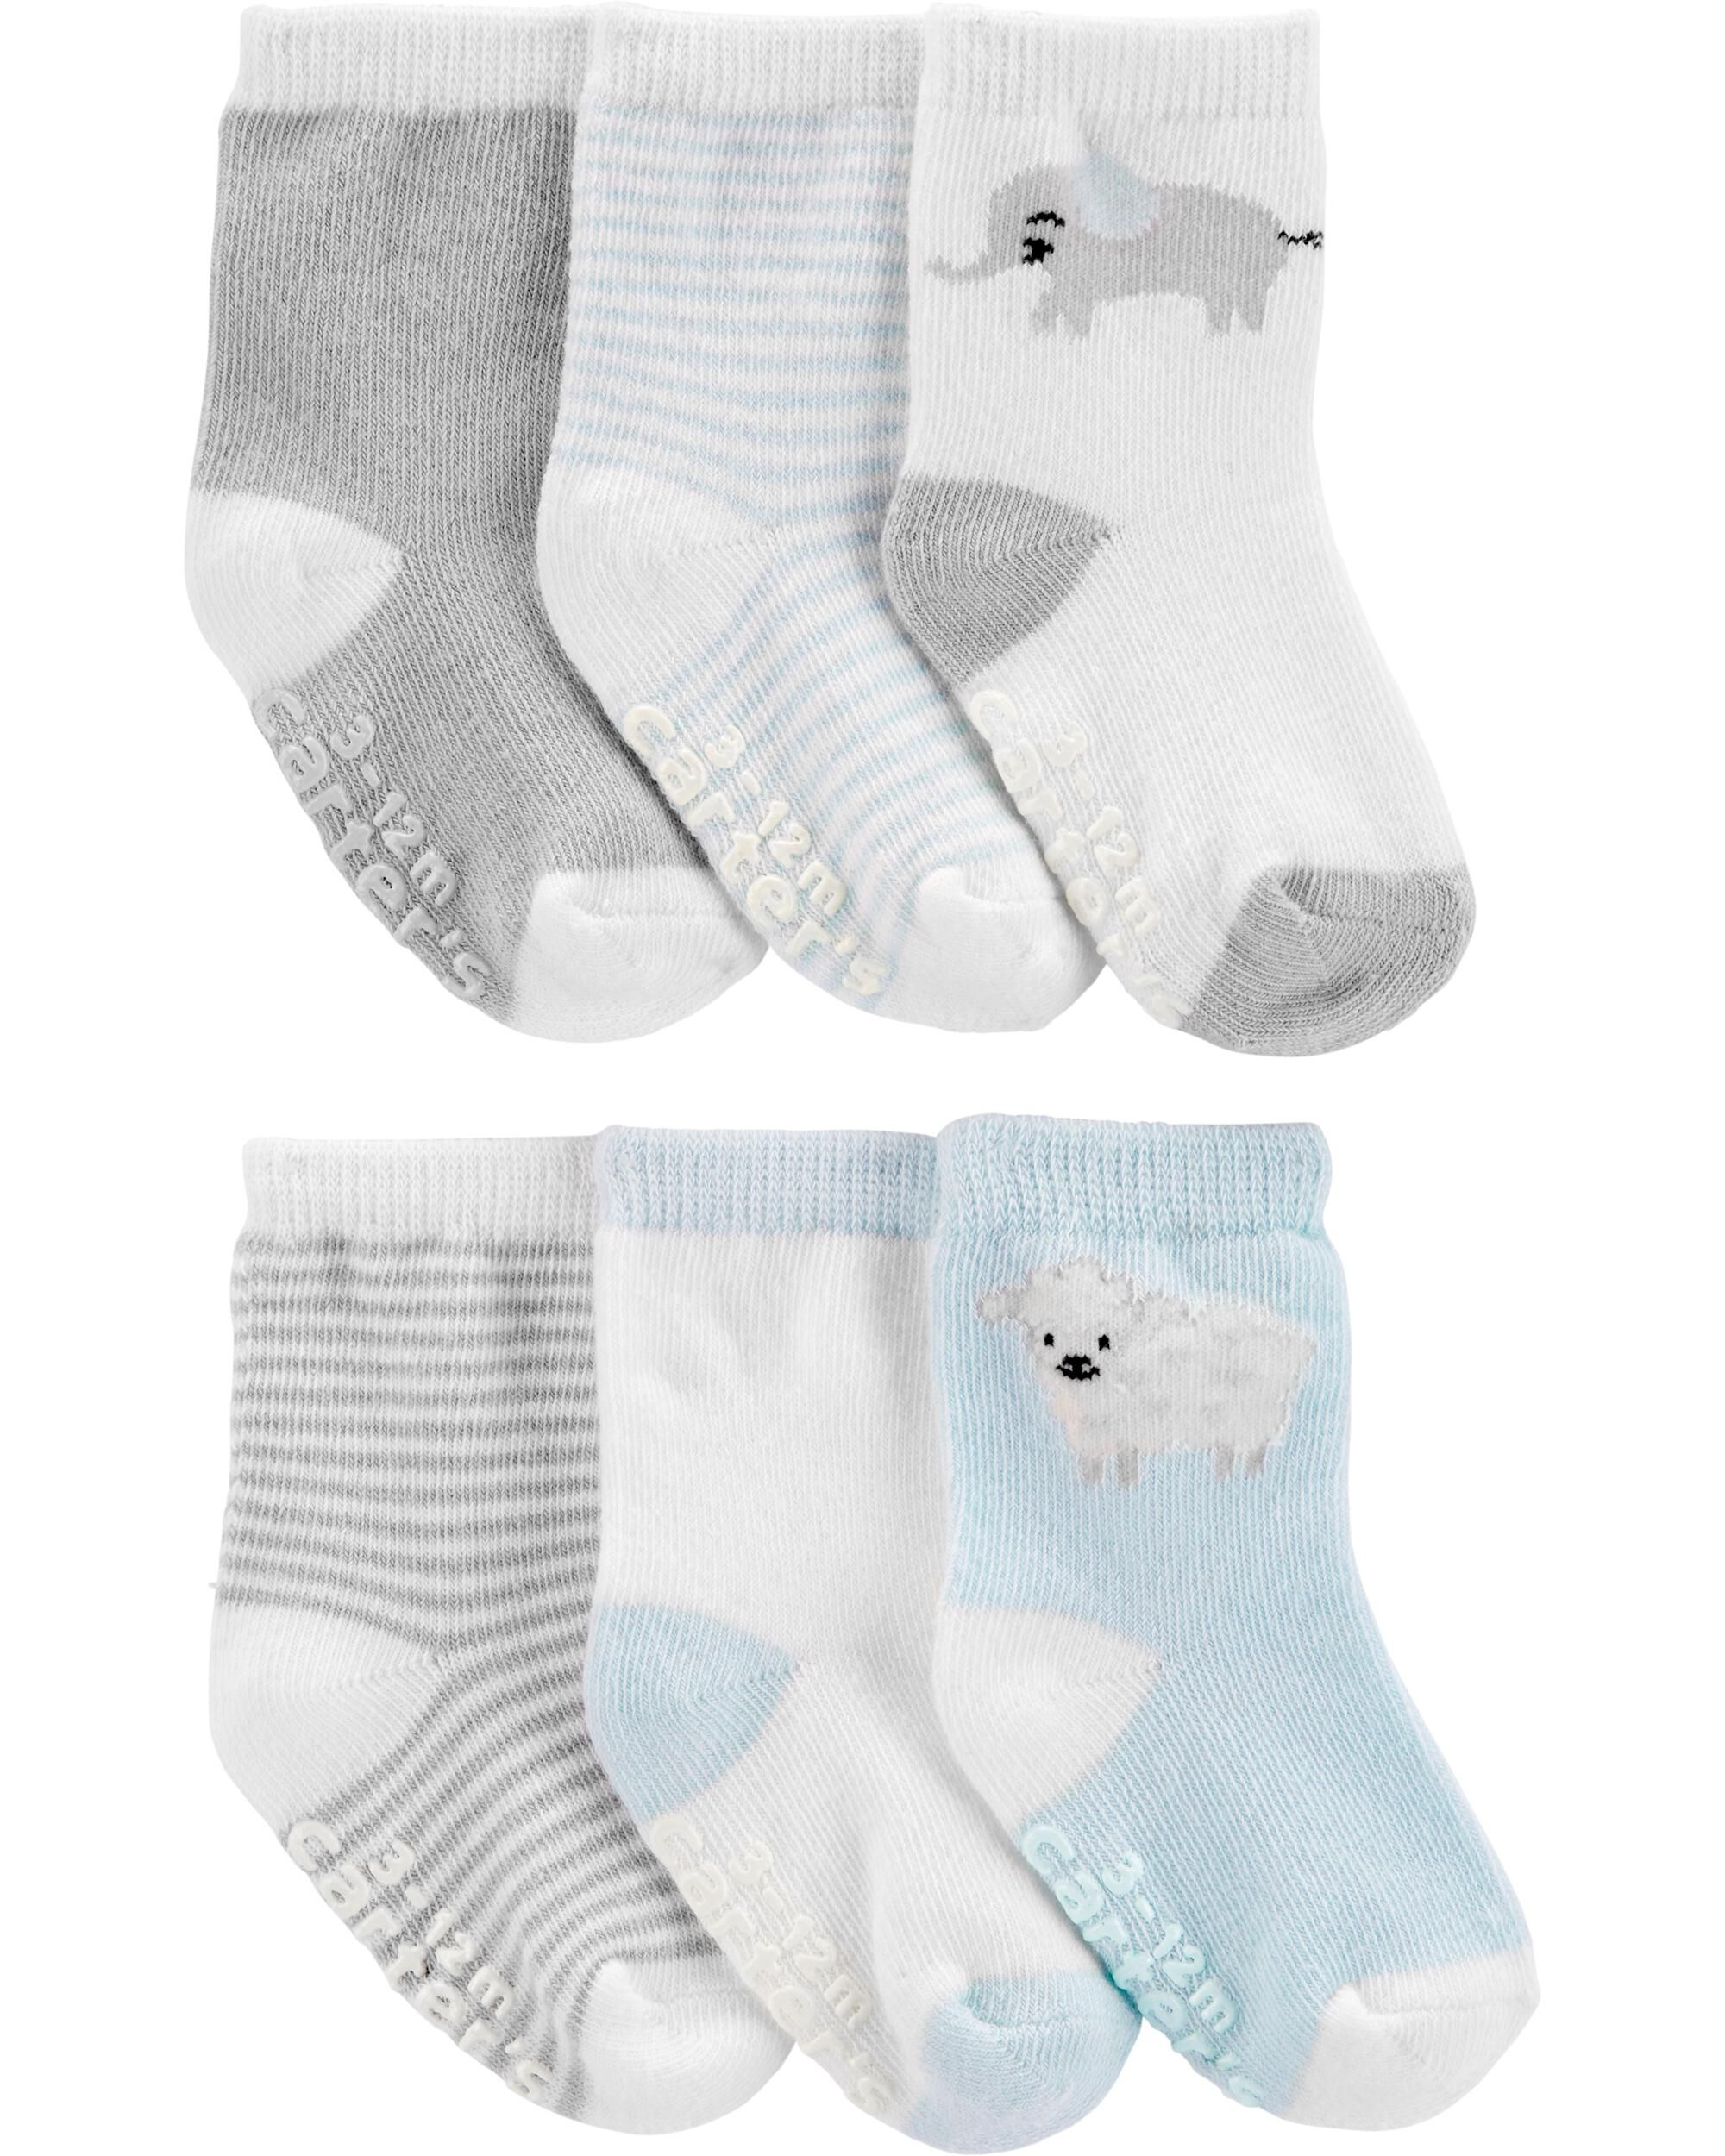 UK Made 6 pairs of soft CREAM Ankle Length Socks with Turn over Top Baby Boy or Girl 6 pairs suitable for any occasion